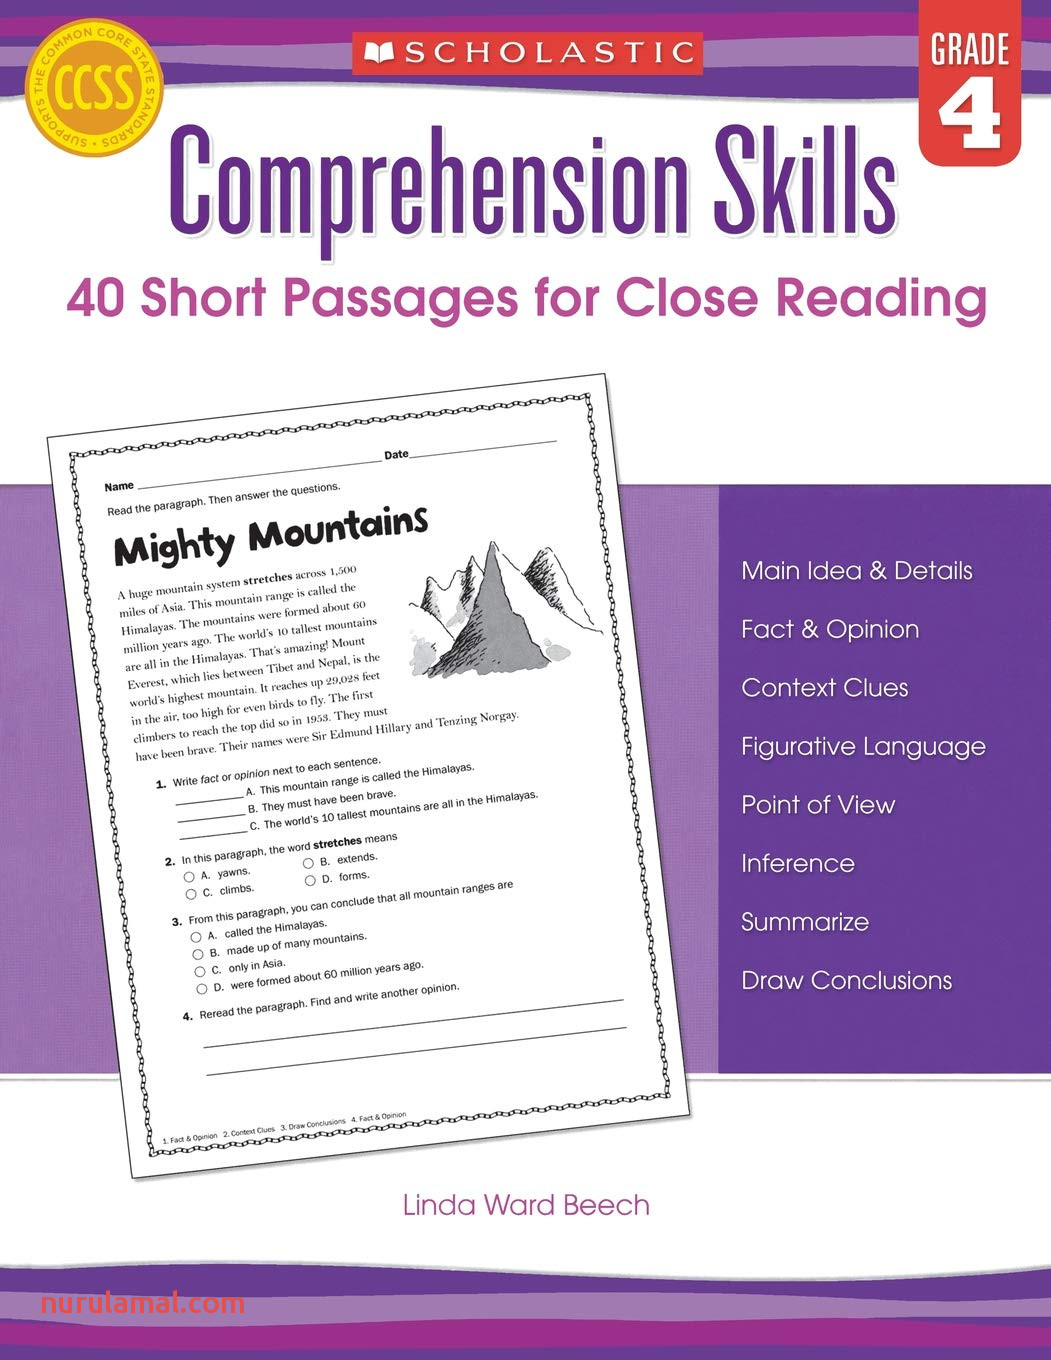 Worksheet Ideas astonishing Prehension Passages for